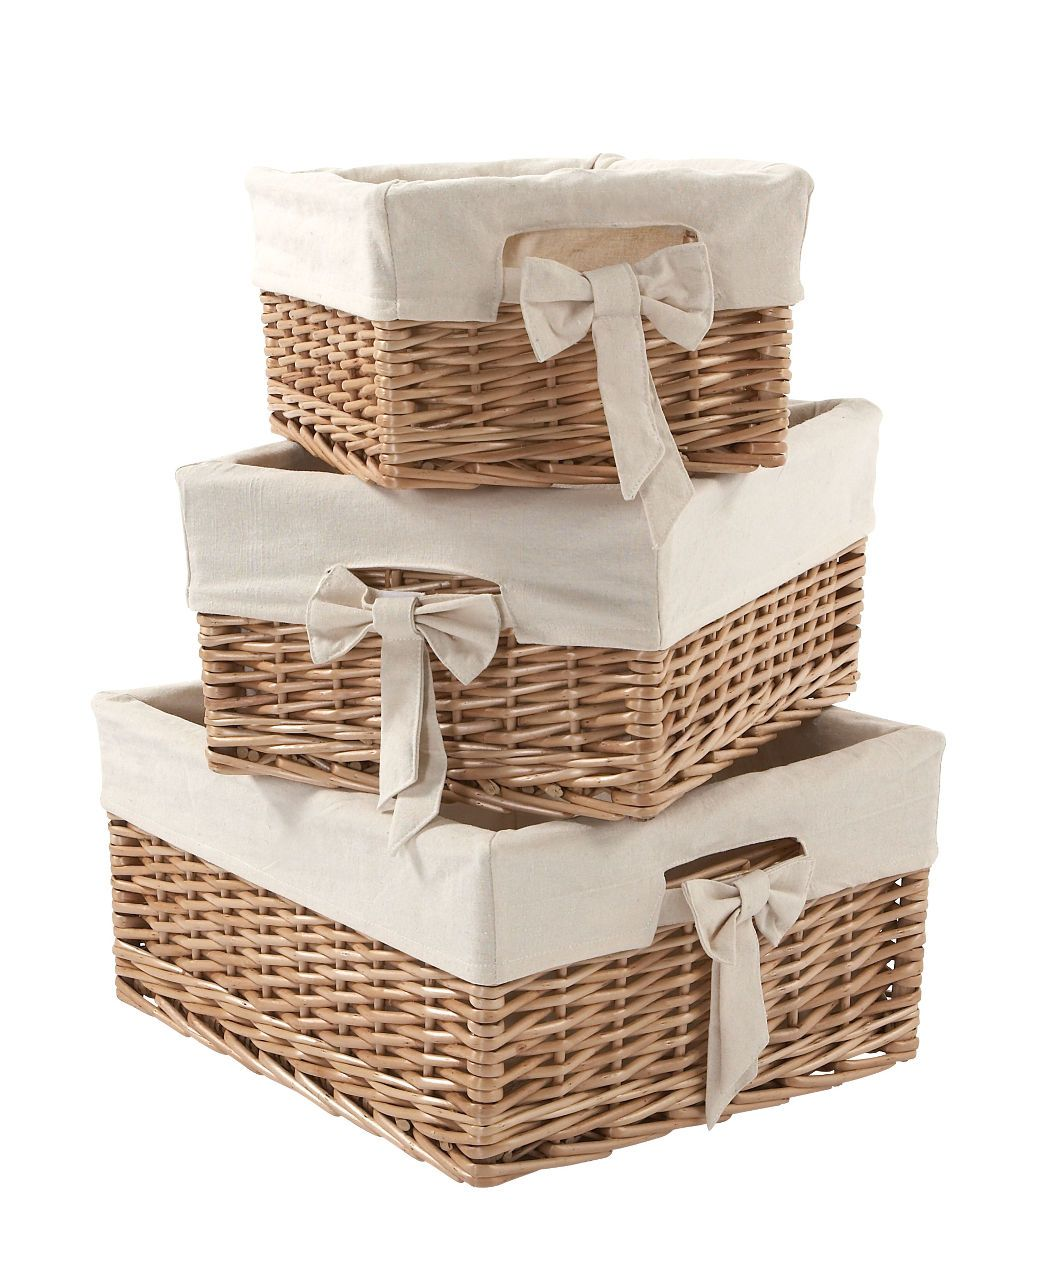 Storage Baskets  Set Of 3 In Natural   Nursery Accessories   Mamas U0026 Papas